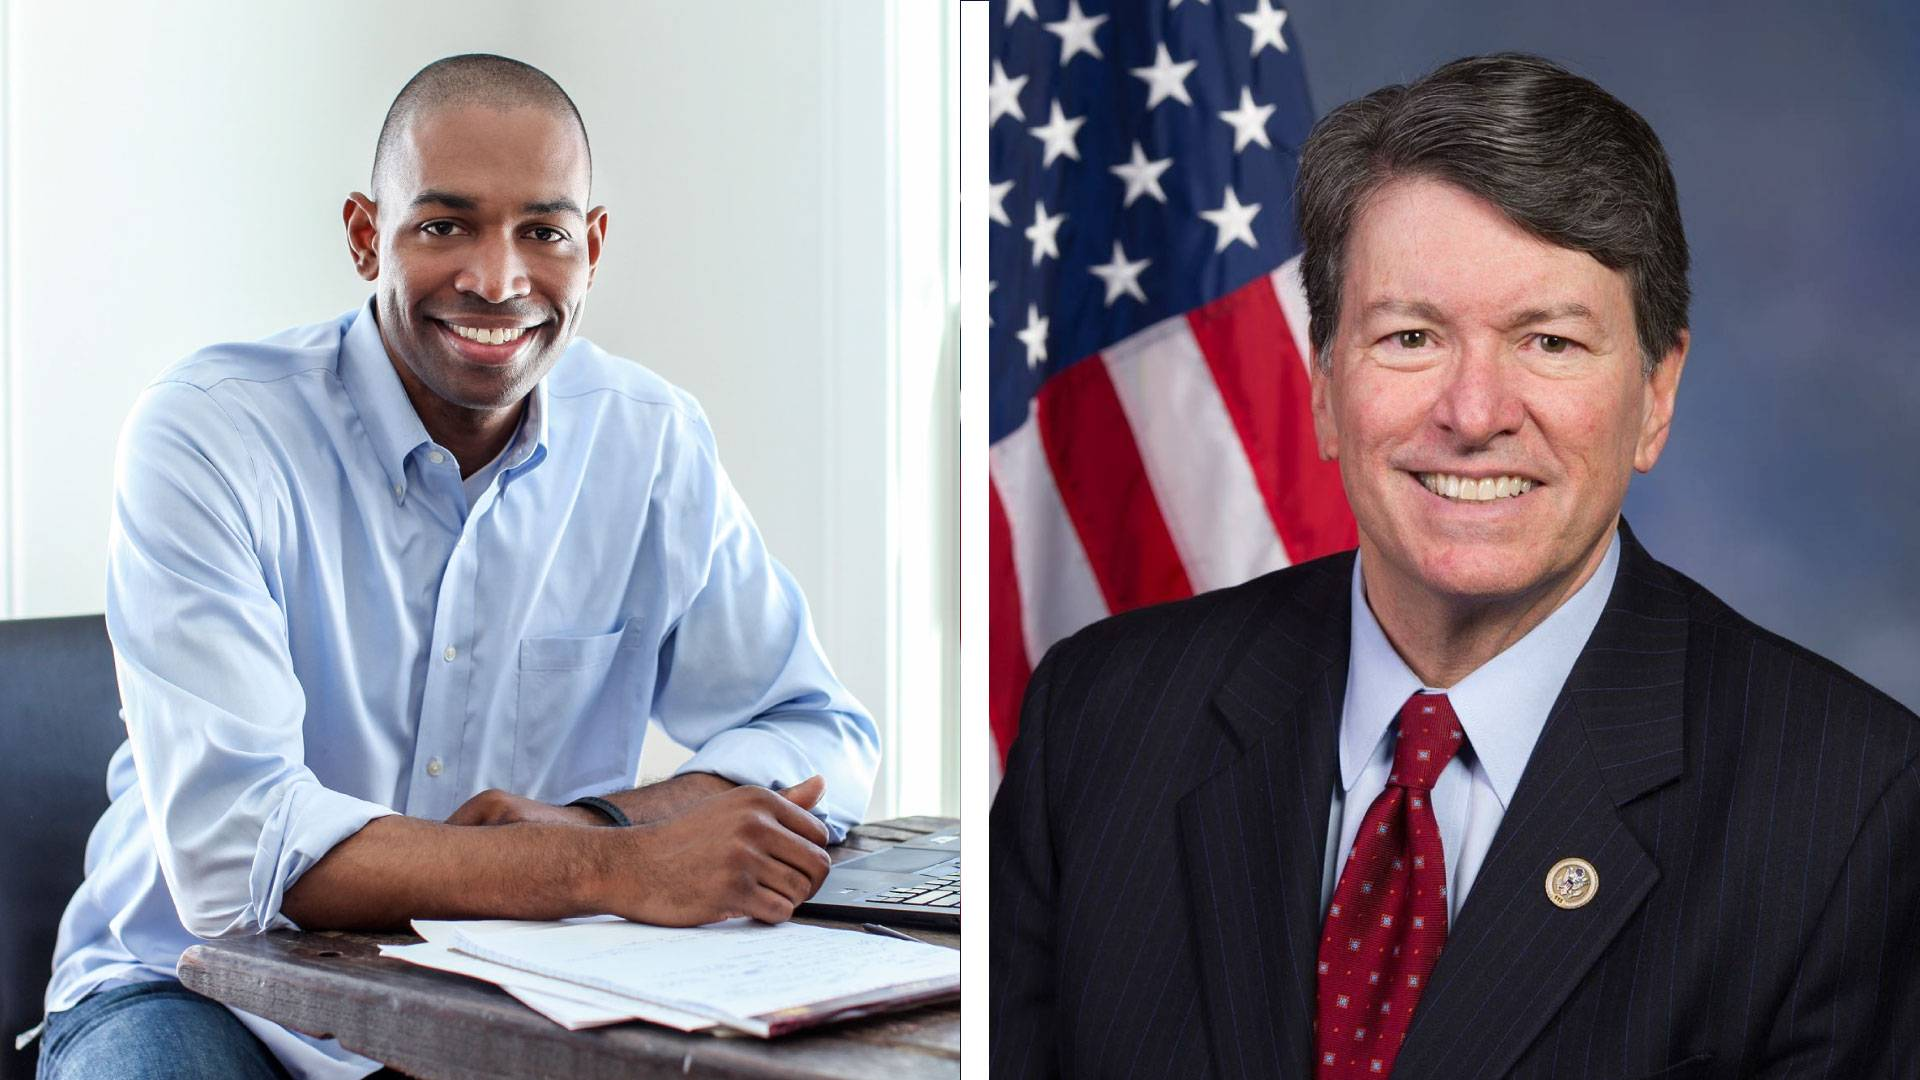 Faso-Delgado to debate at WMHT October 19th